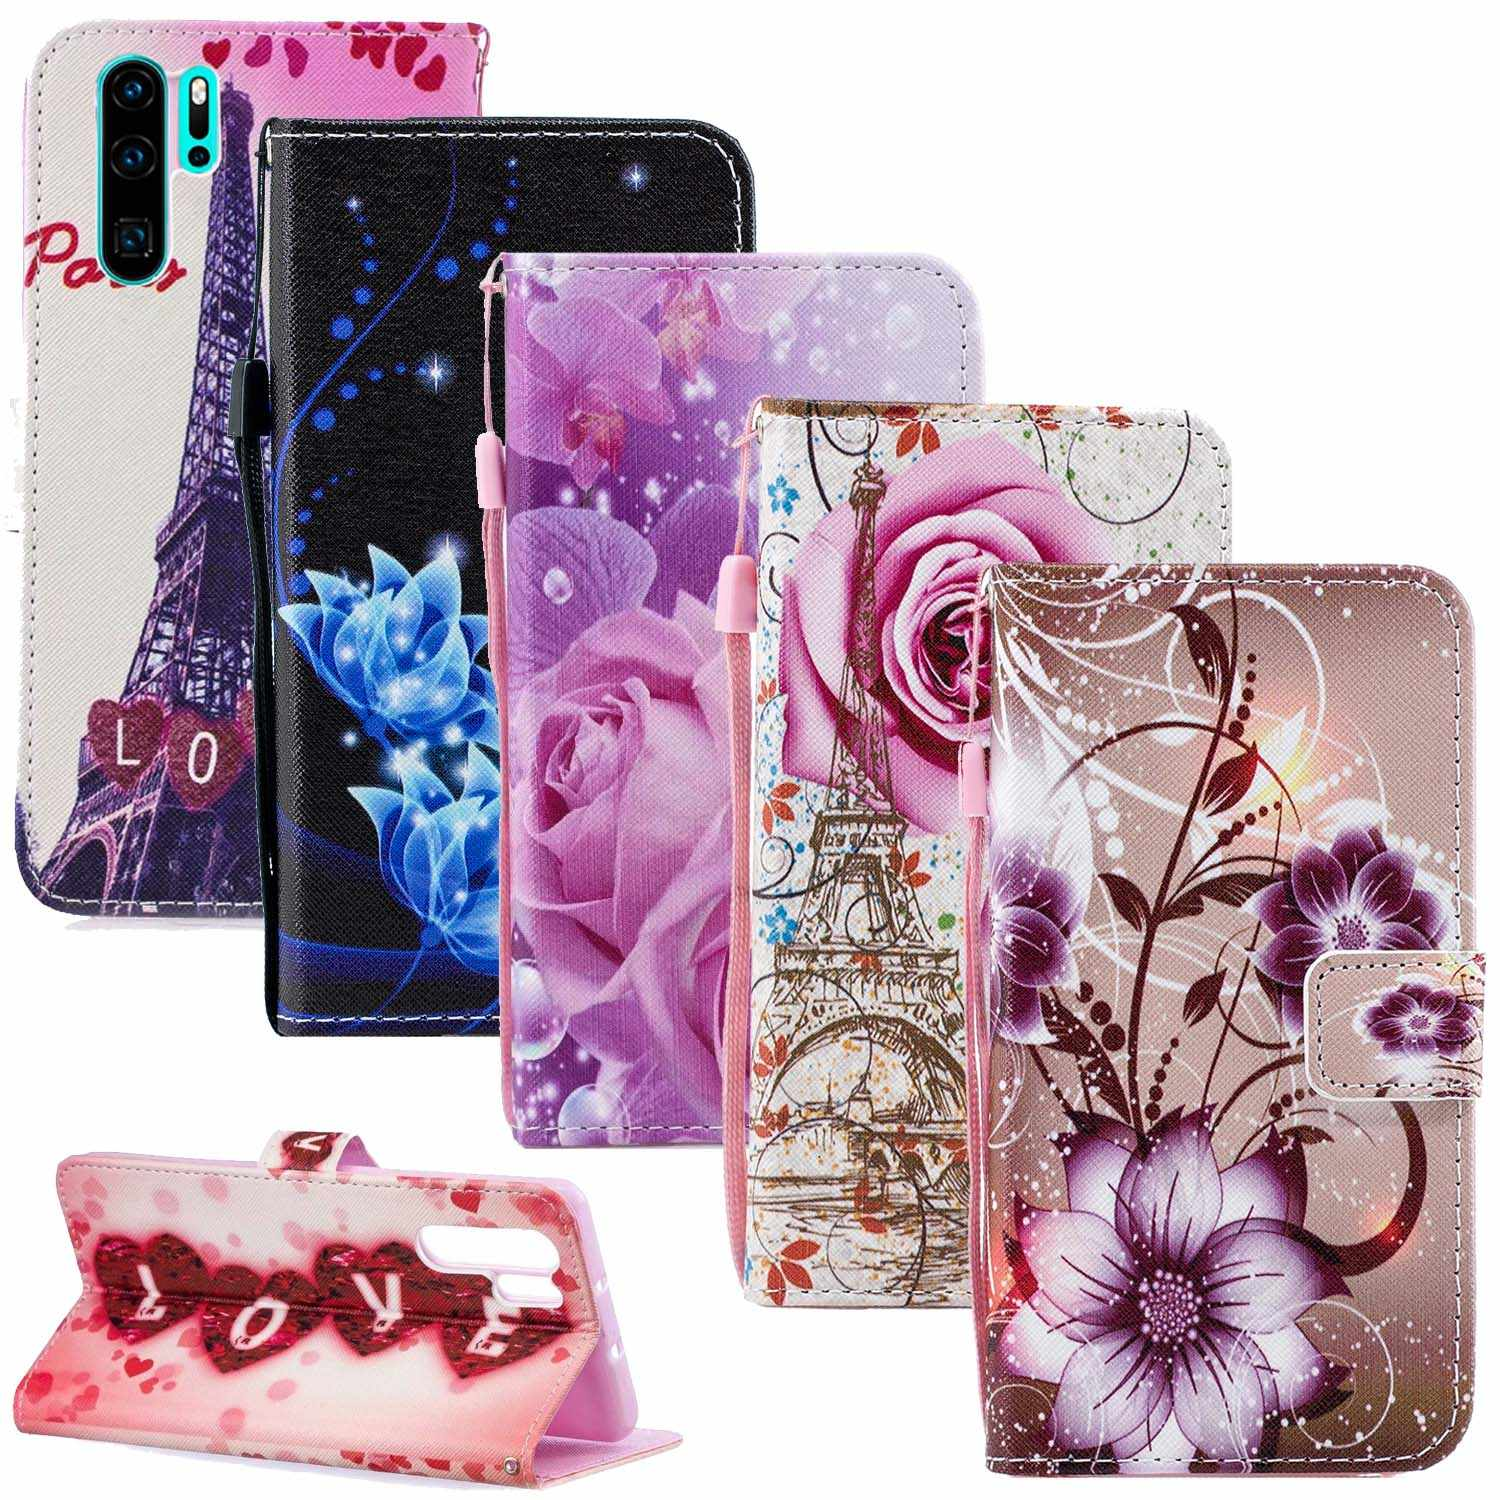 P20 P30 Pro Flower Leather Cases For Huawei Honor 10 9 Lite 7A 7C 8A 8C P Smart Nova 3 3i Y7 Y9 Y5 Y6 Prime 2018 Case Wallet Bag